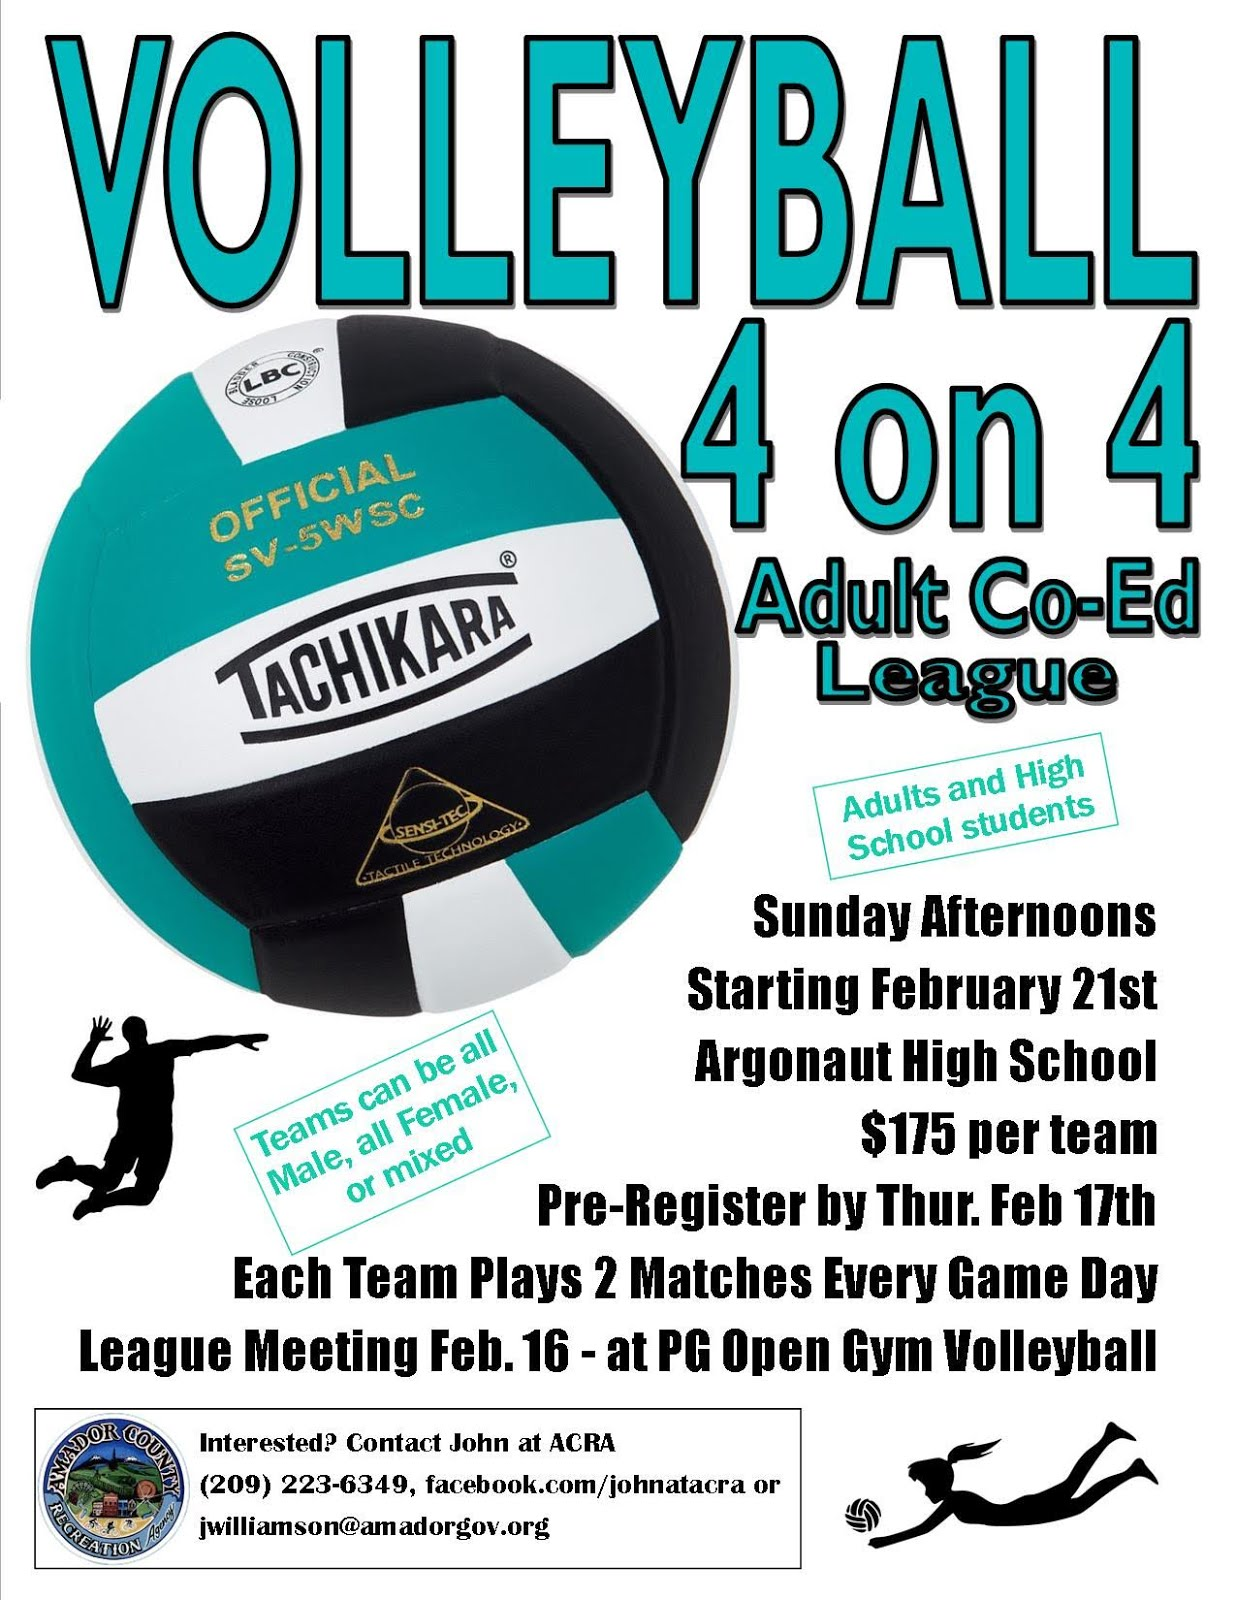 Volleyball 4 on 4 - League Meeting Feb 16